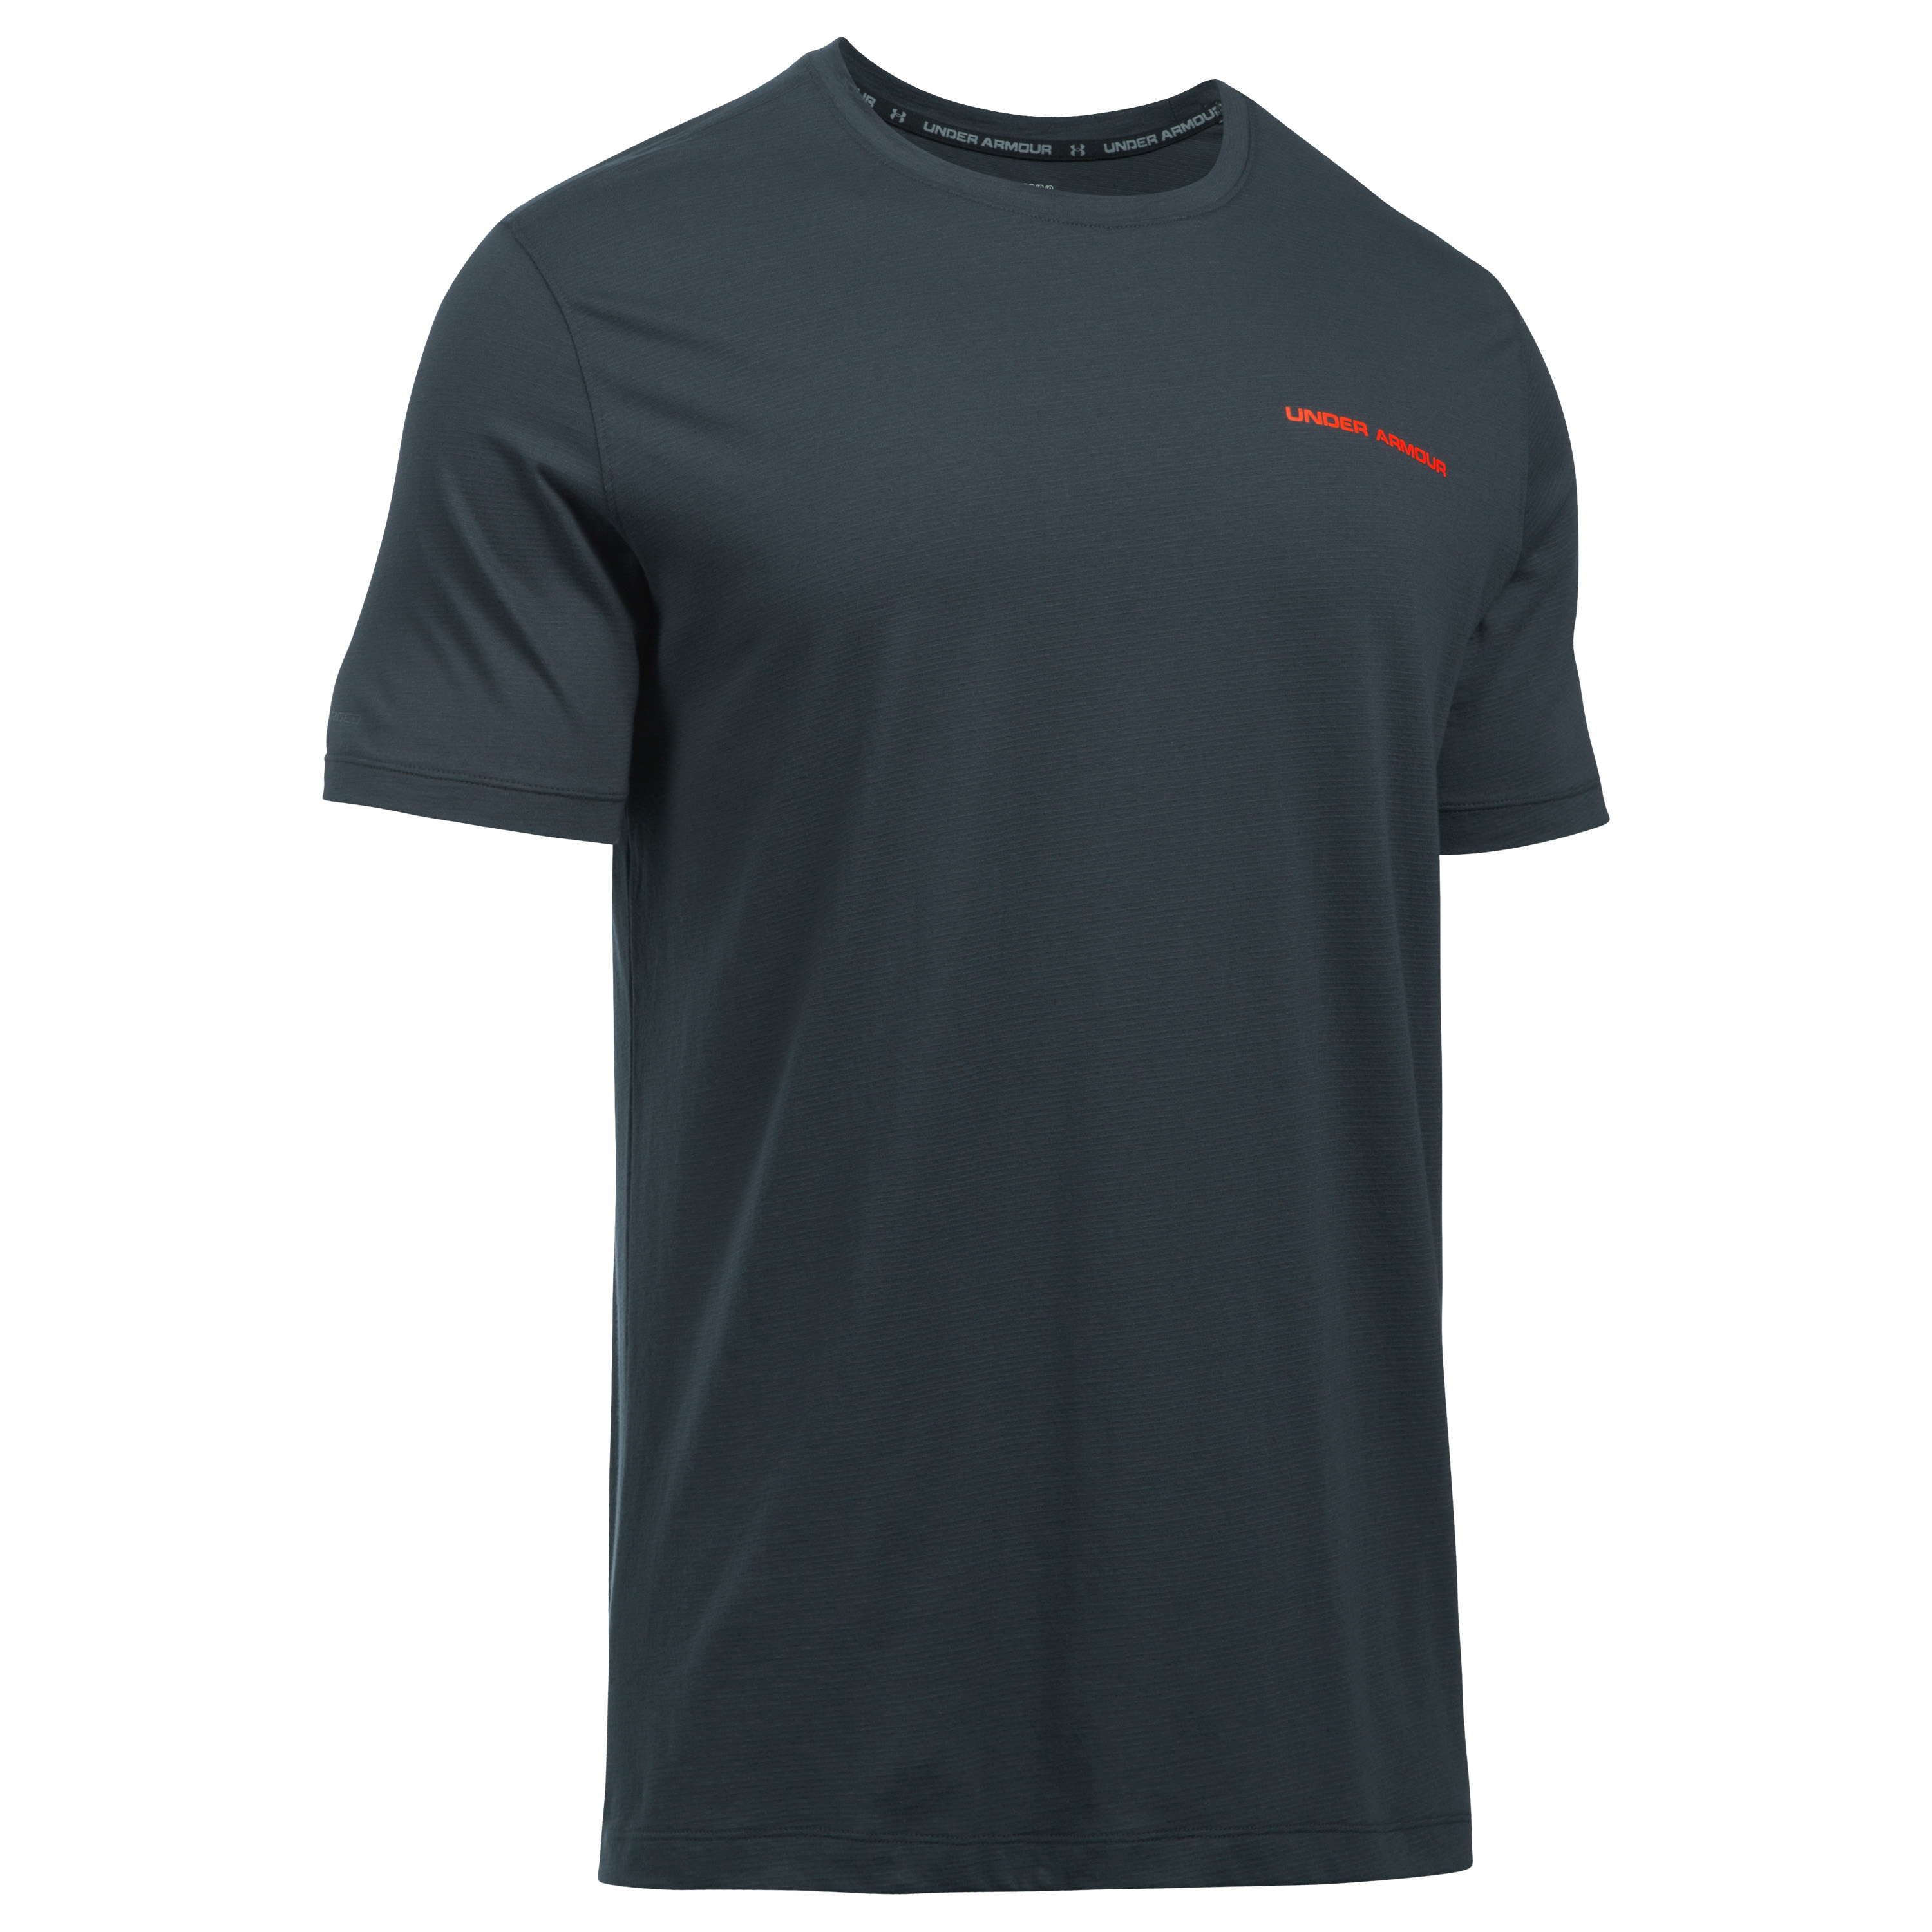 Under Armour Fitness T-Shirt Charged Cotton dunkelgrau